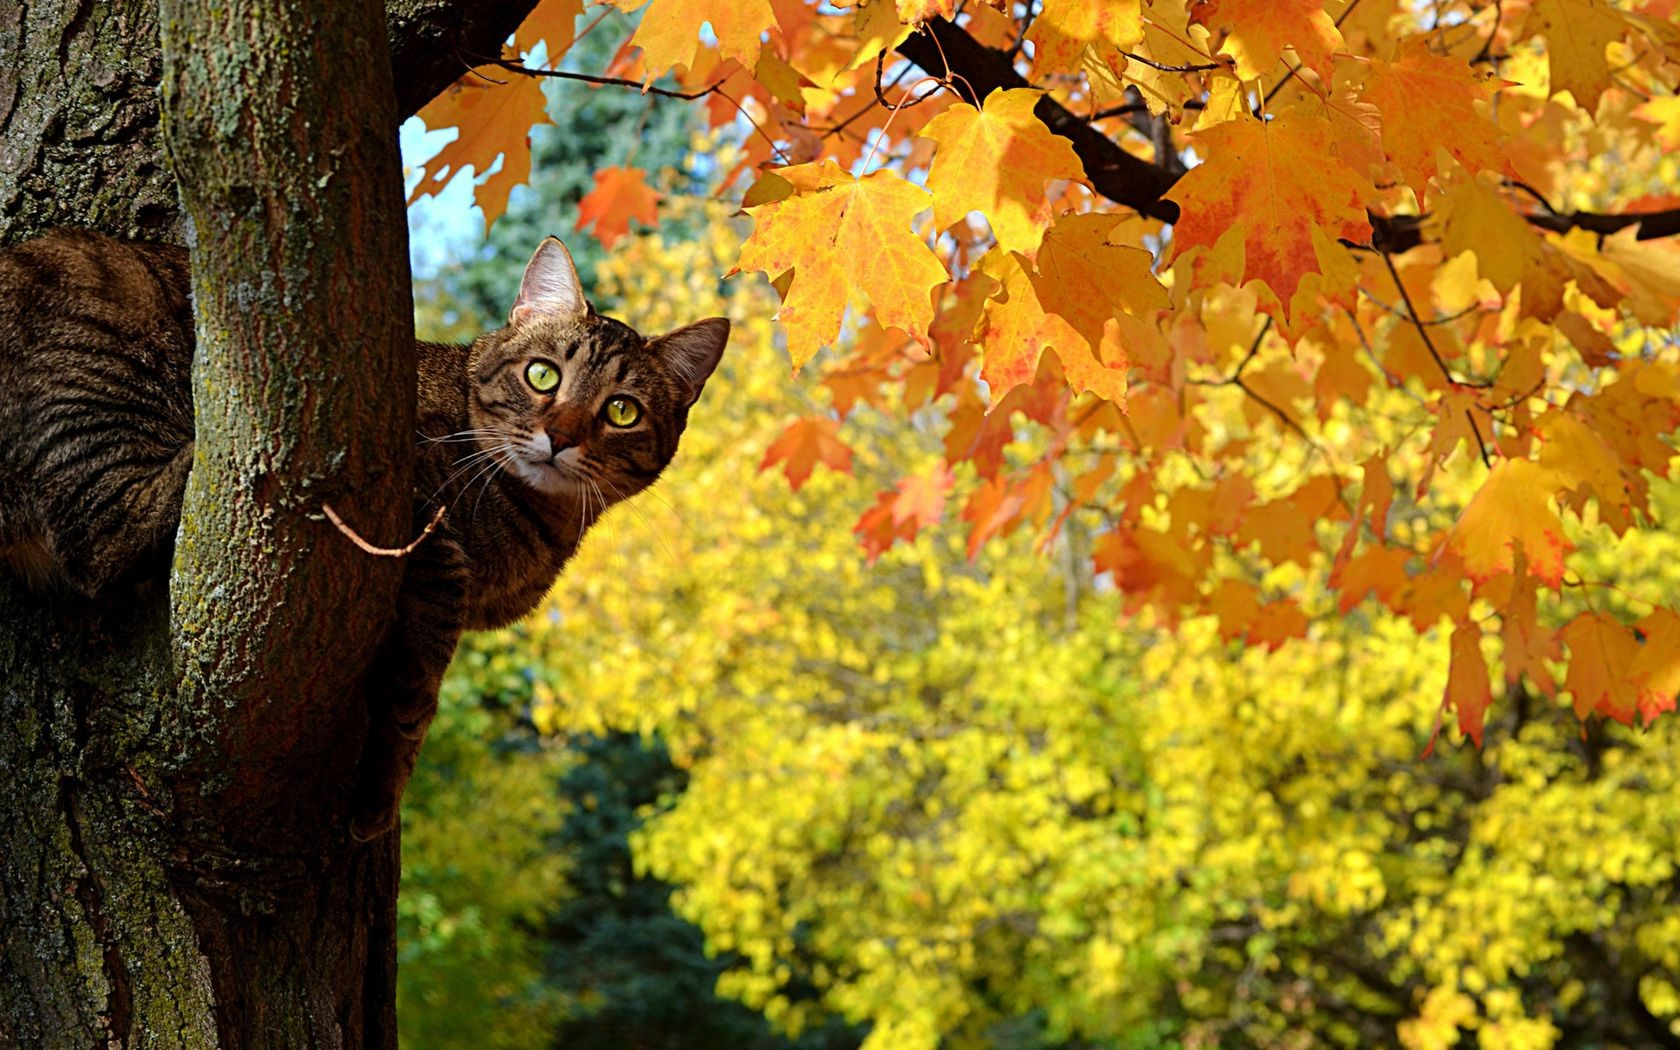 Kote autumn leaves maple tree, cat - Android wallpapers